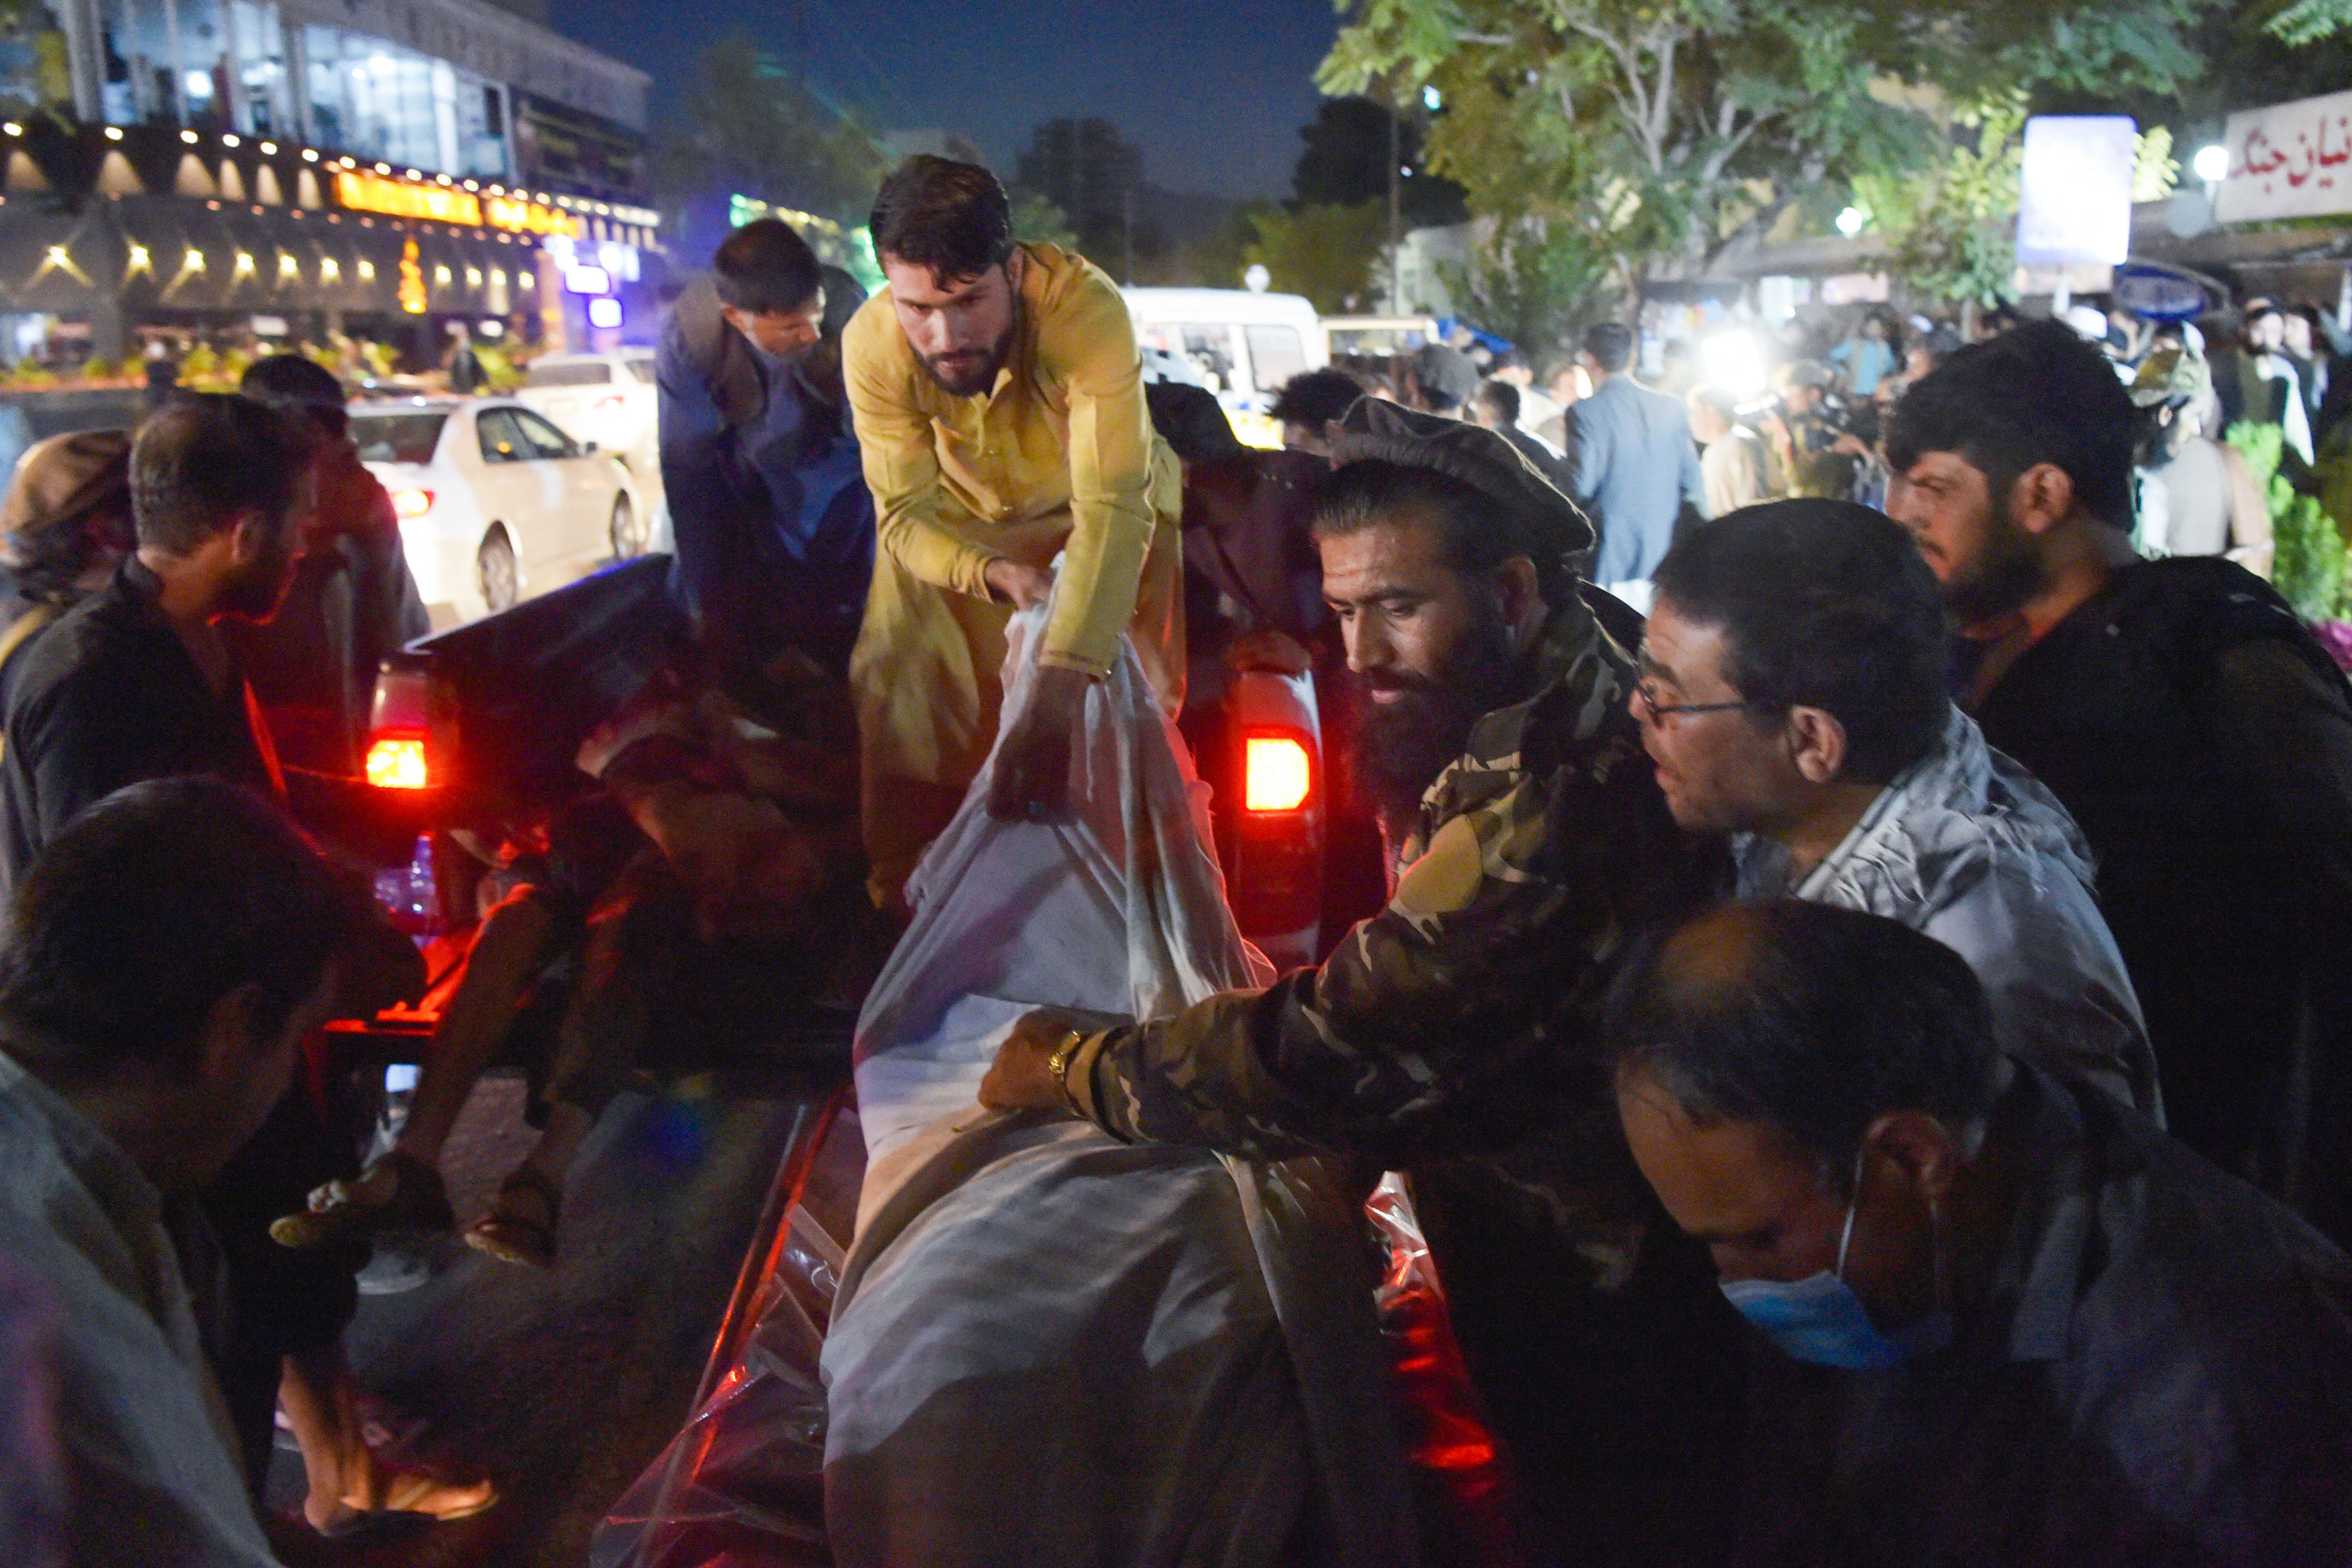 Volunteers and medical staff unload bodies at a hospital after a bomb blast in Kabul, Afghanistan, on August 26, 2021.